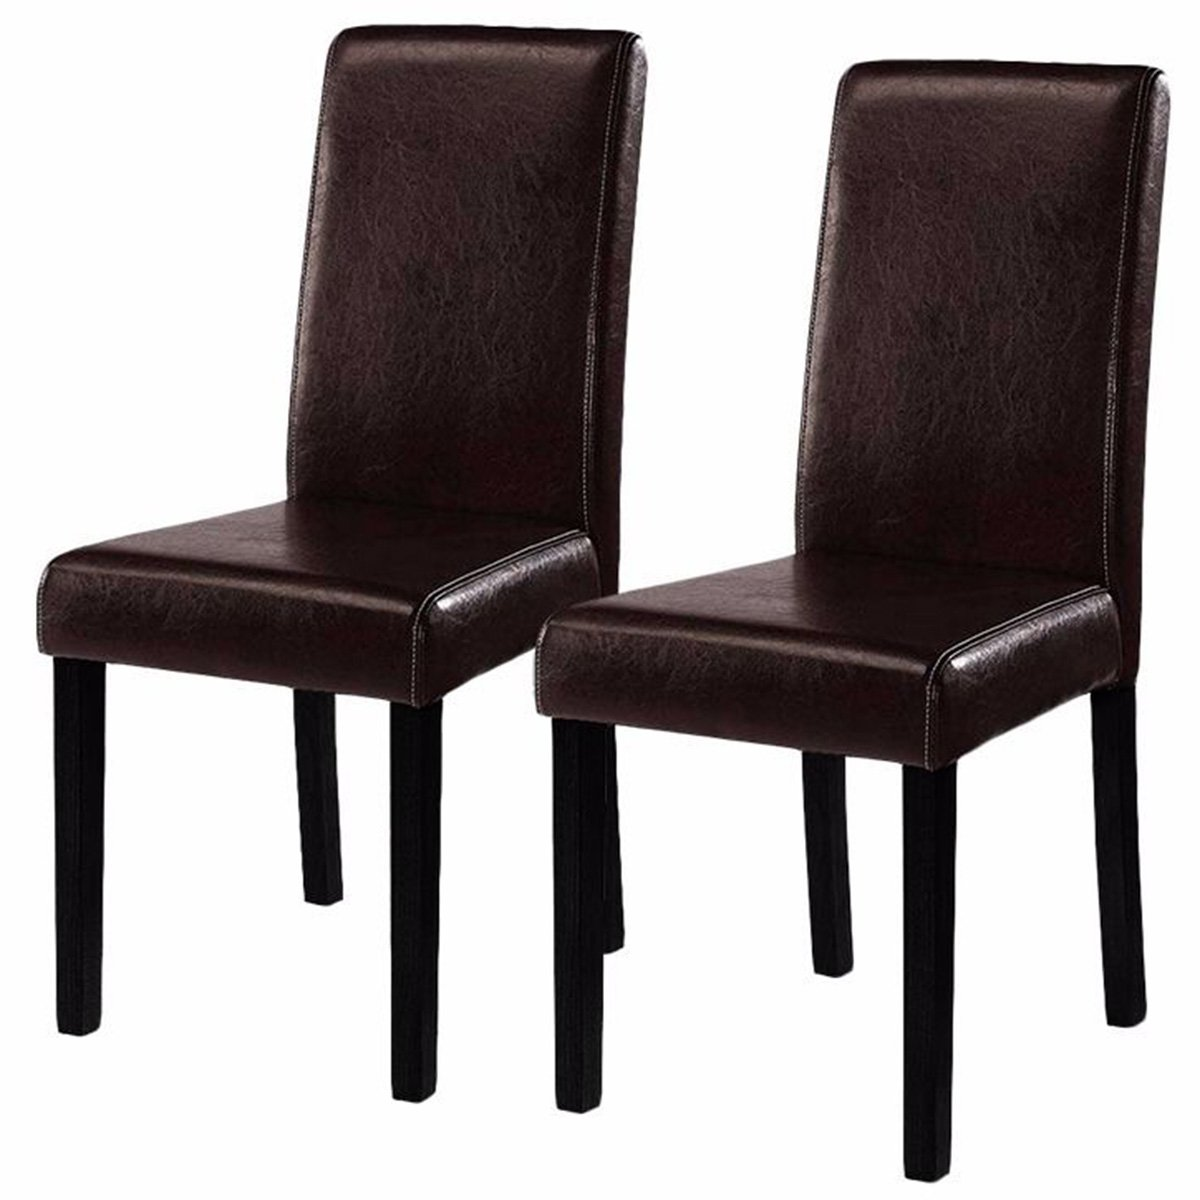 PROSPERLY U.S.Product Set of 2 Elegant Design Leather Contemporary Dining Chairs Home Room